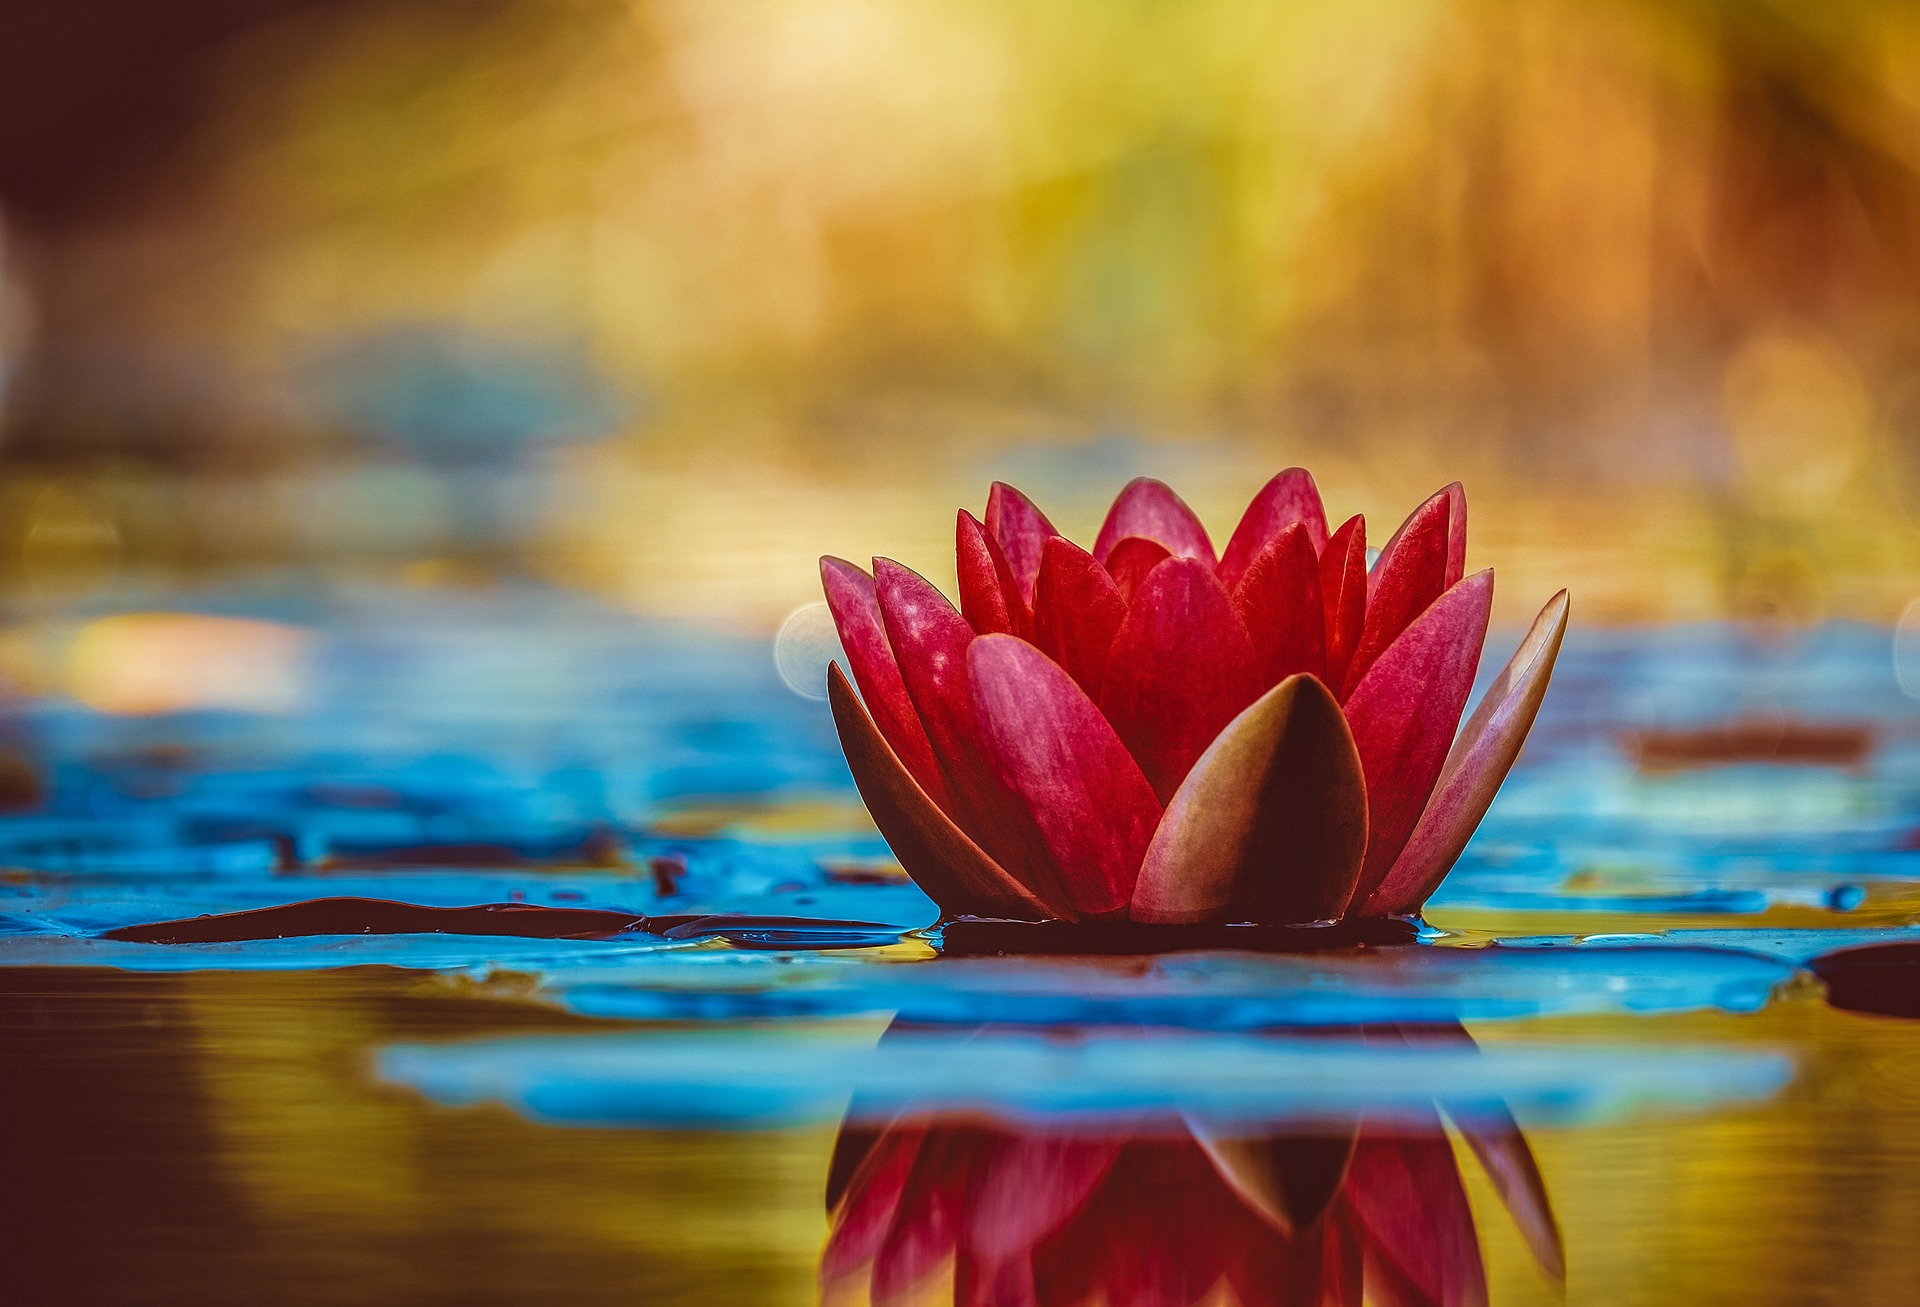 Lotus flower in water